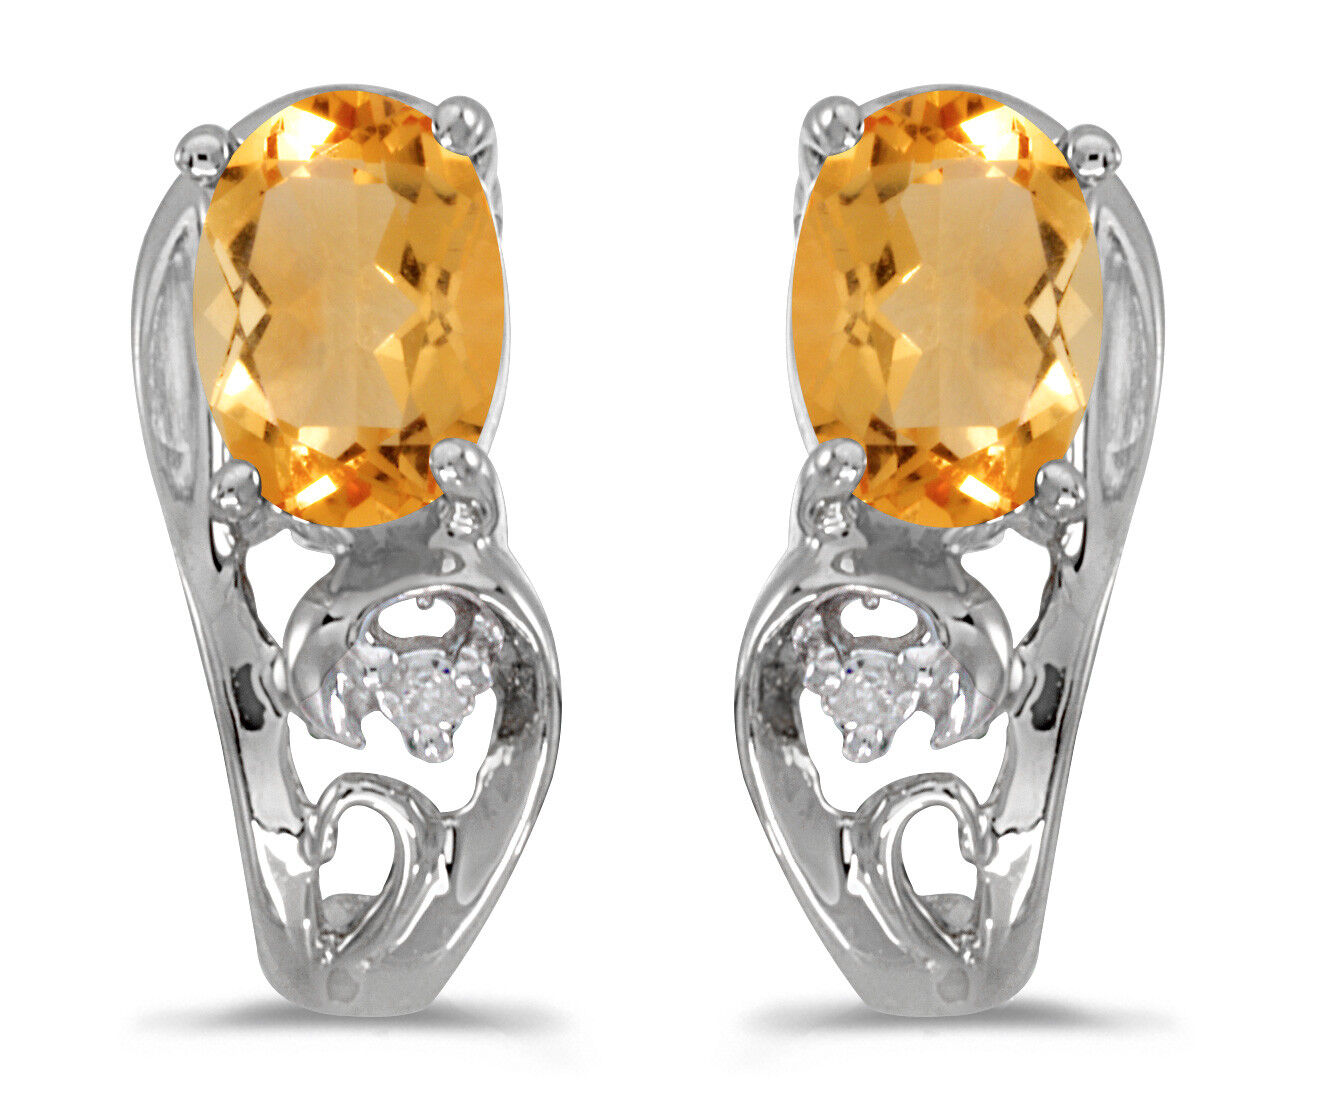 2a44f6d27366f And Citrine Oval White 10k Diamond gold Earrings gepxc04c74895 ...